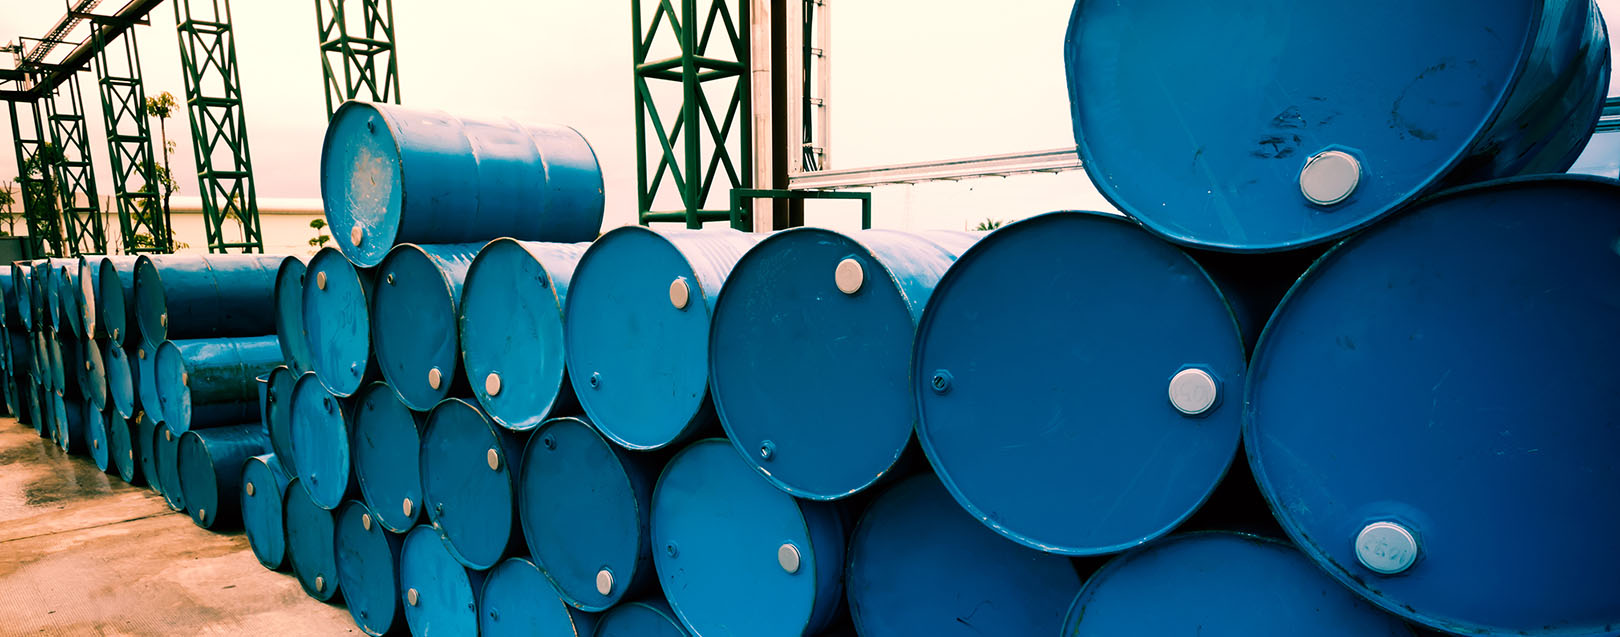 Reports confirm compliance to oil supply constraining OPEC deal